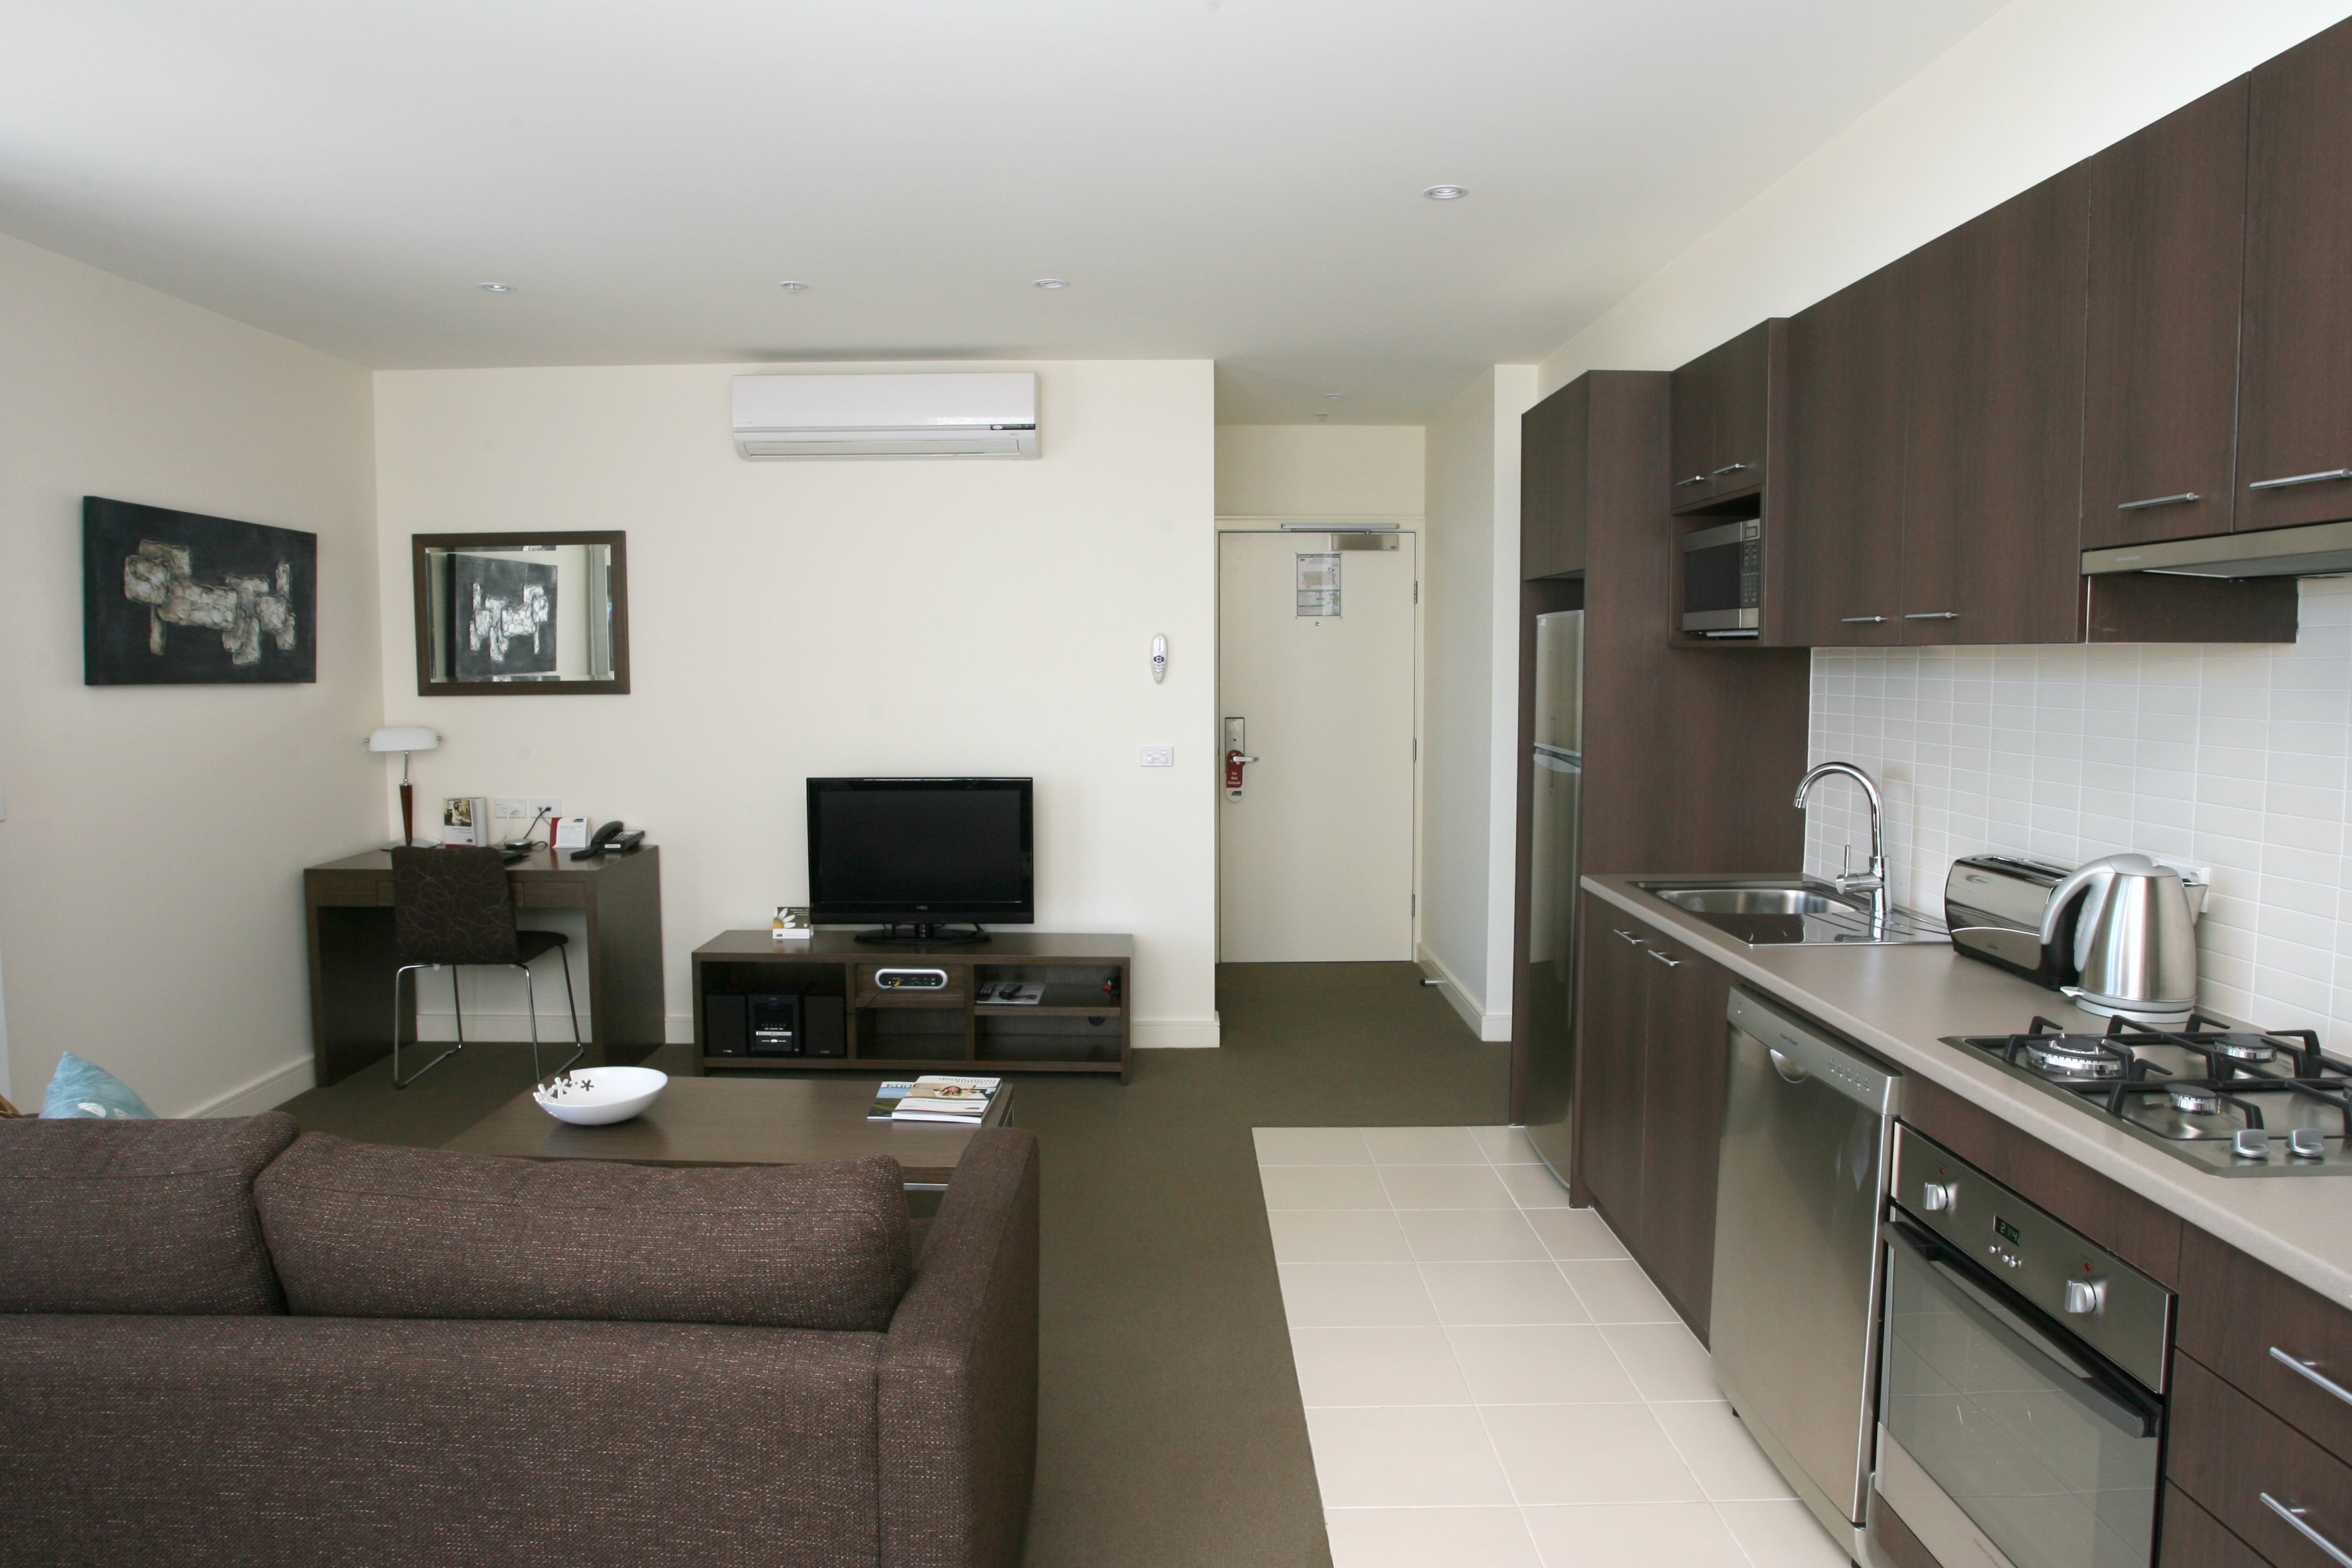 Quest Ivanhoe is serviced apartment accommodation, opened in November '08, is a 4 1/2 star property located only 10kms northeast from the Melbourne CBD in the prestigious suburb of Ivanhoe. Situated i